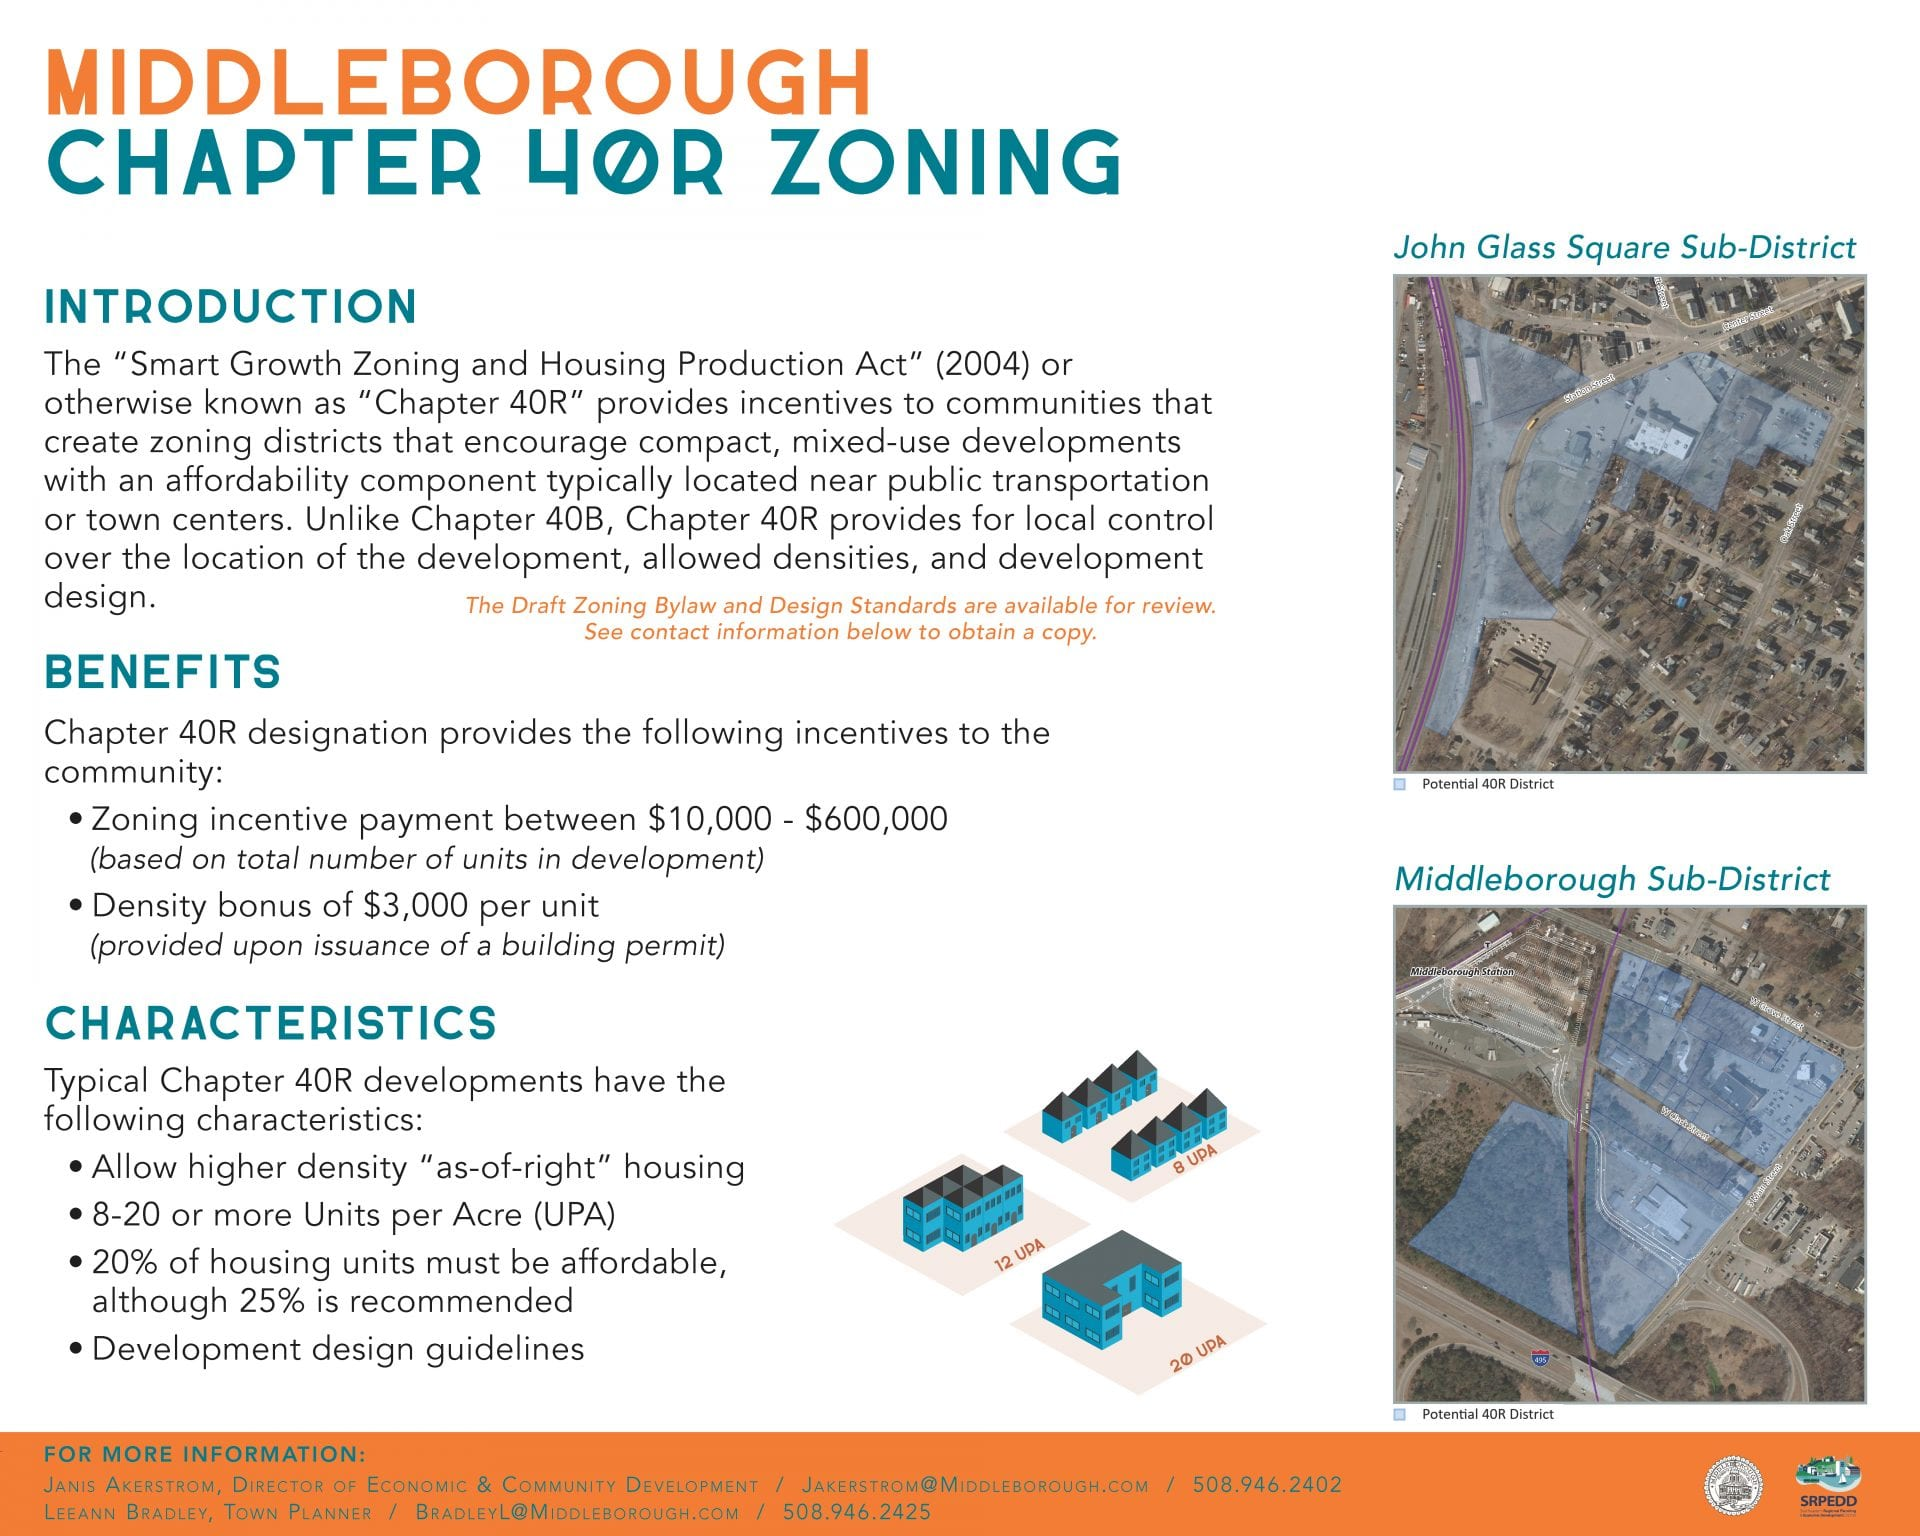 Informational poster about the 40R zoning adoption process for Middleborough